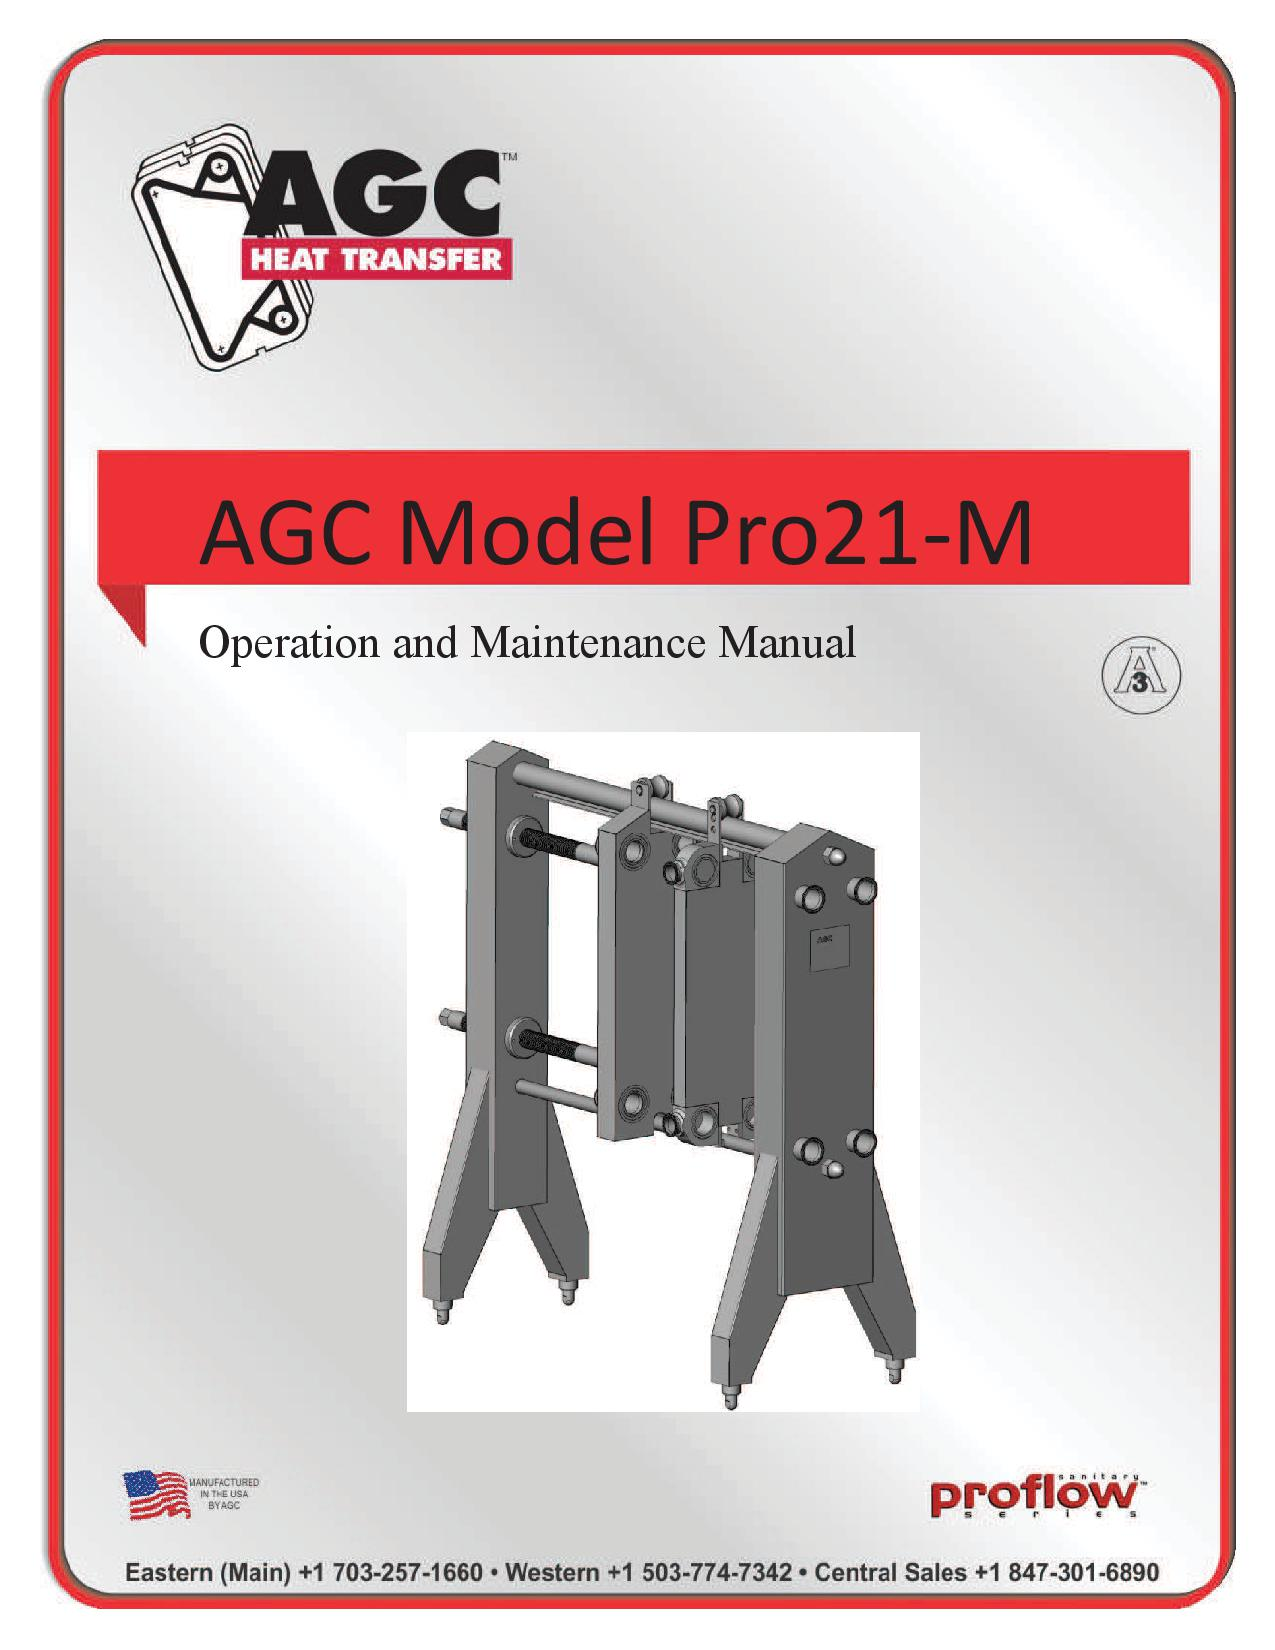 AGC Operating Manual Pro21-M